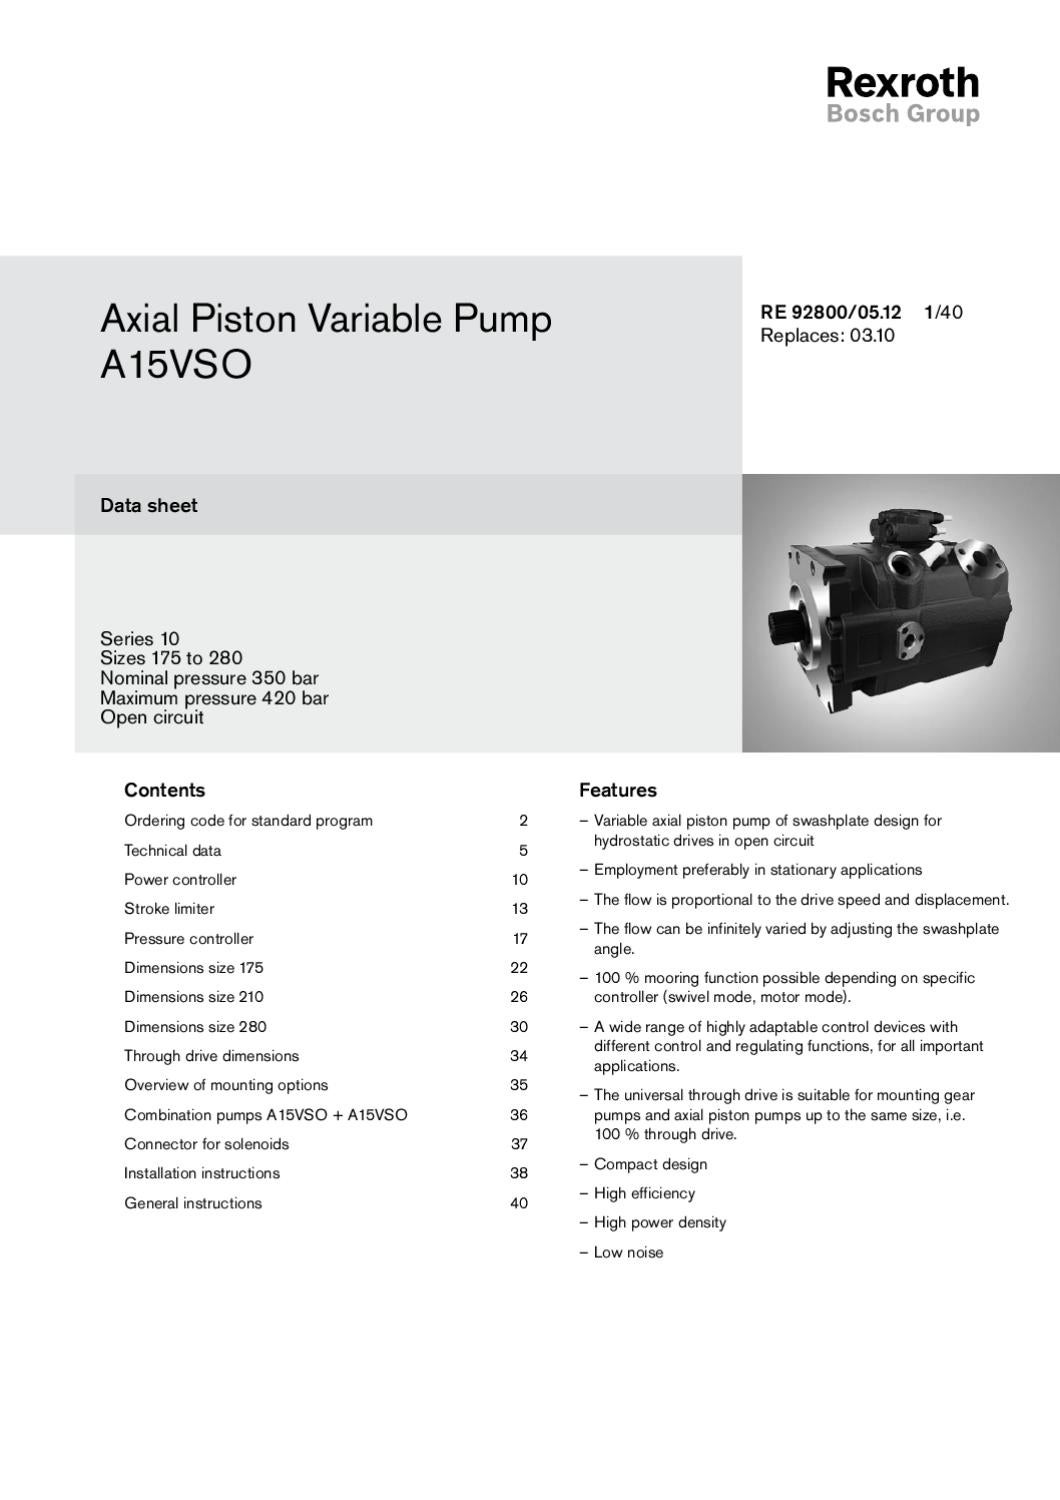 Specifications Rexroth Variable Axial Piston Pump A15VSO by